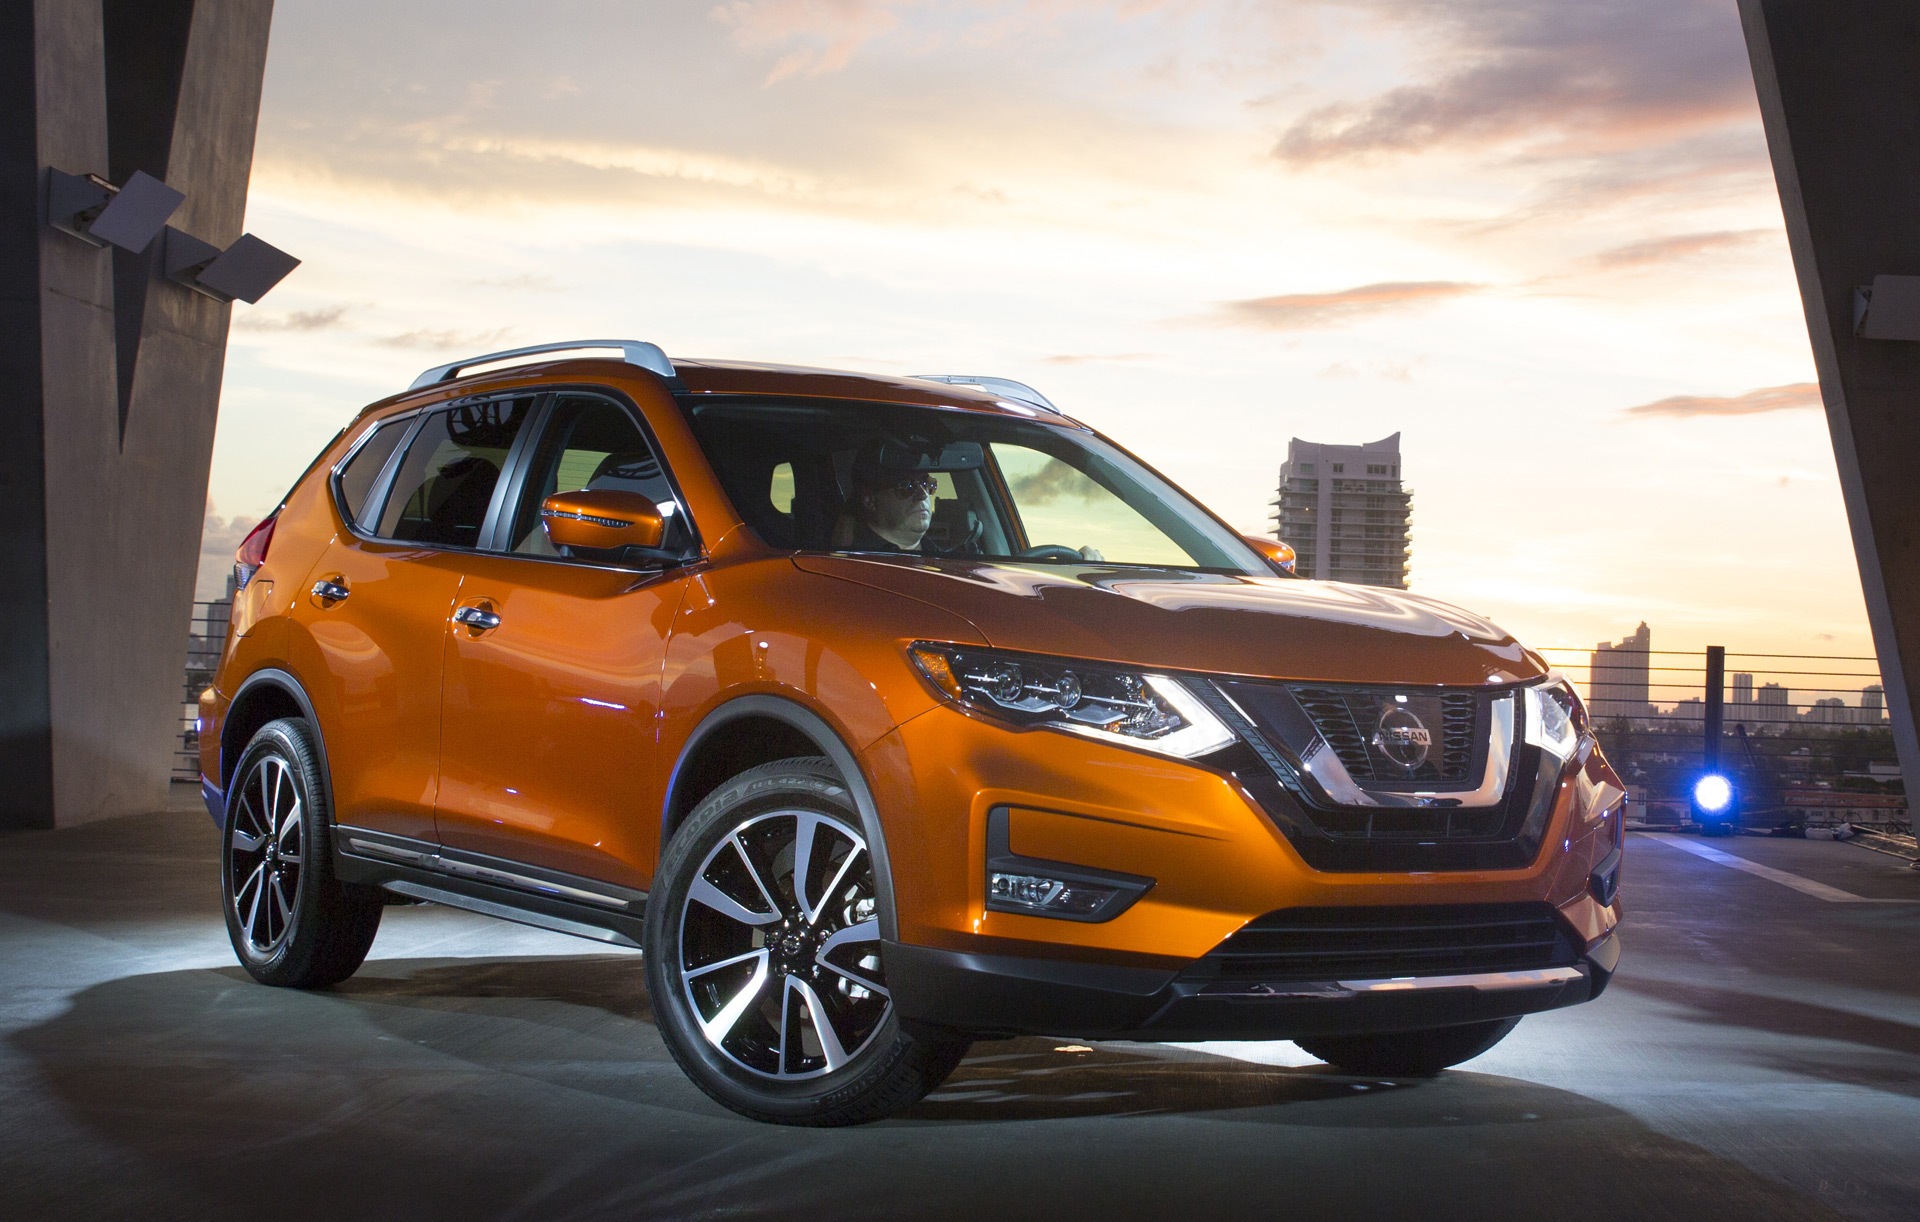 2017 nissan rogue quality review the car connection. Cars Review. Best American Auto & Cars Review